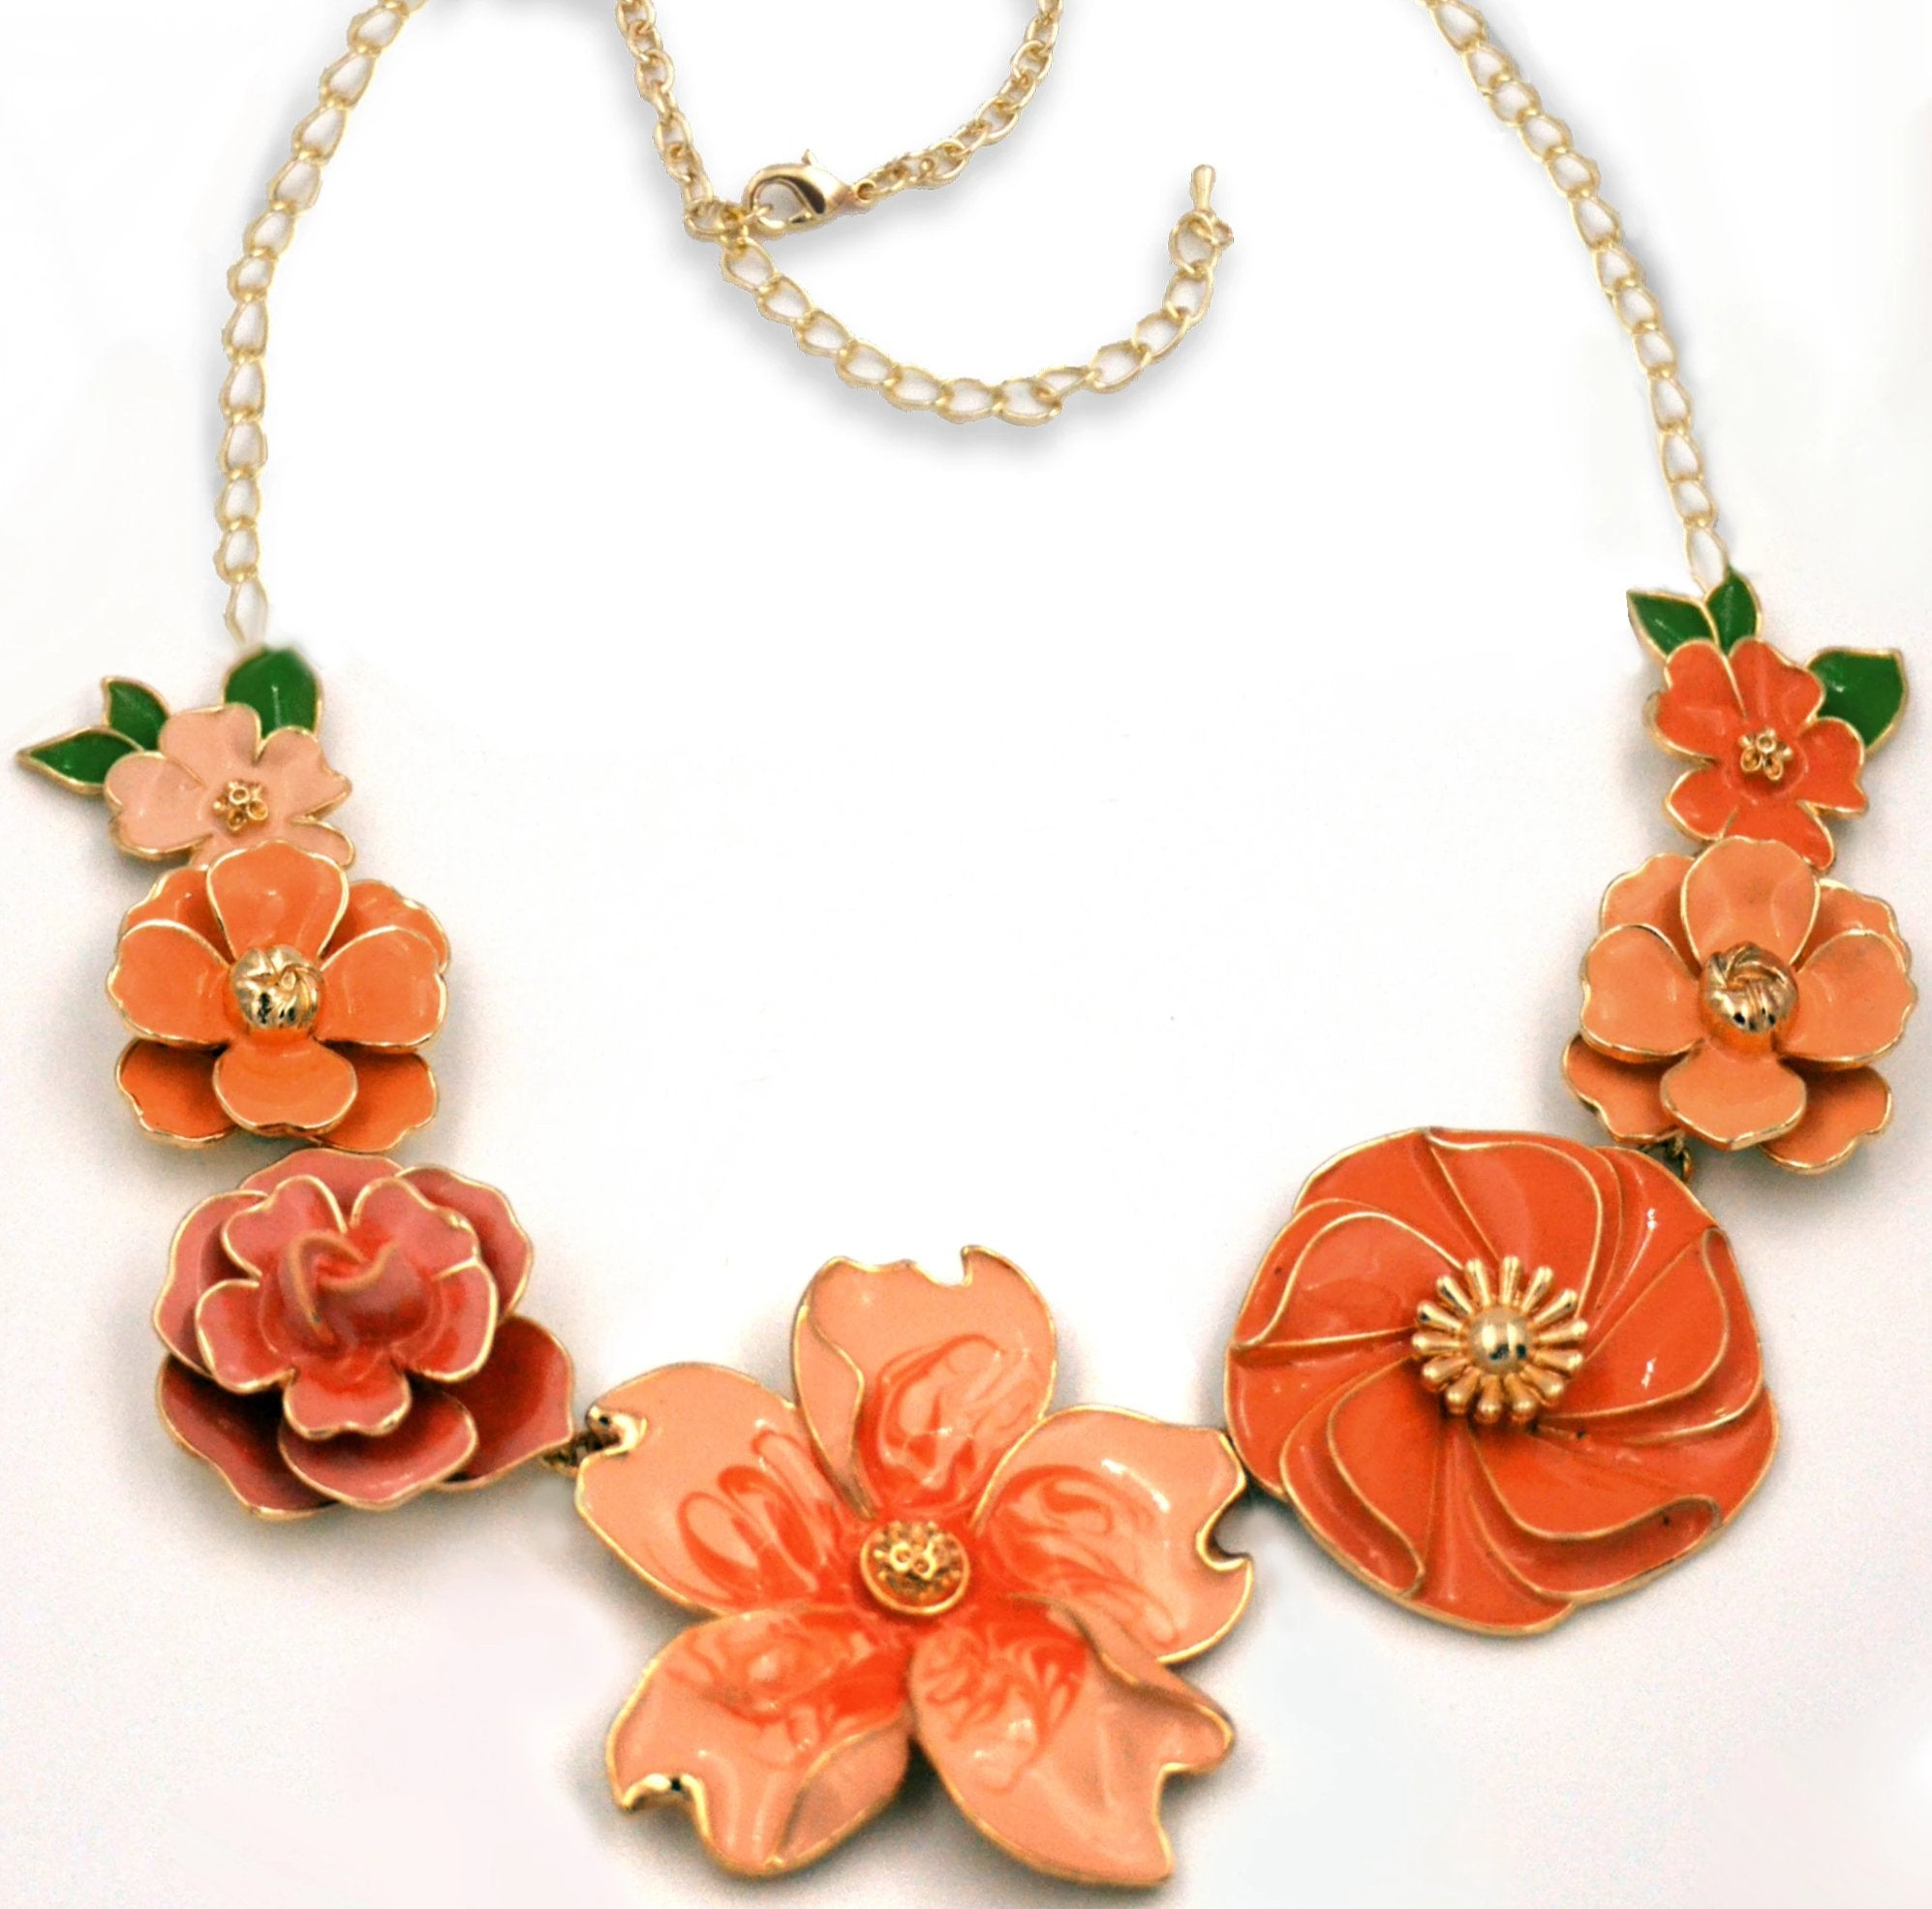 Peach Parfait enamel Floral Necklace